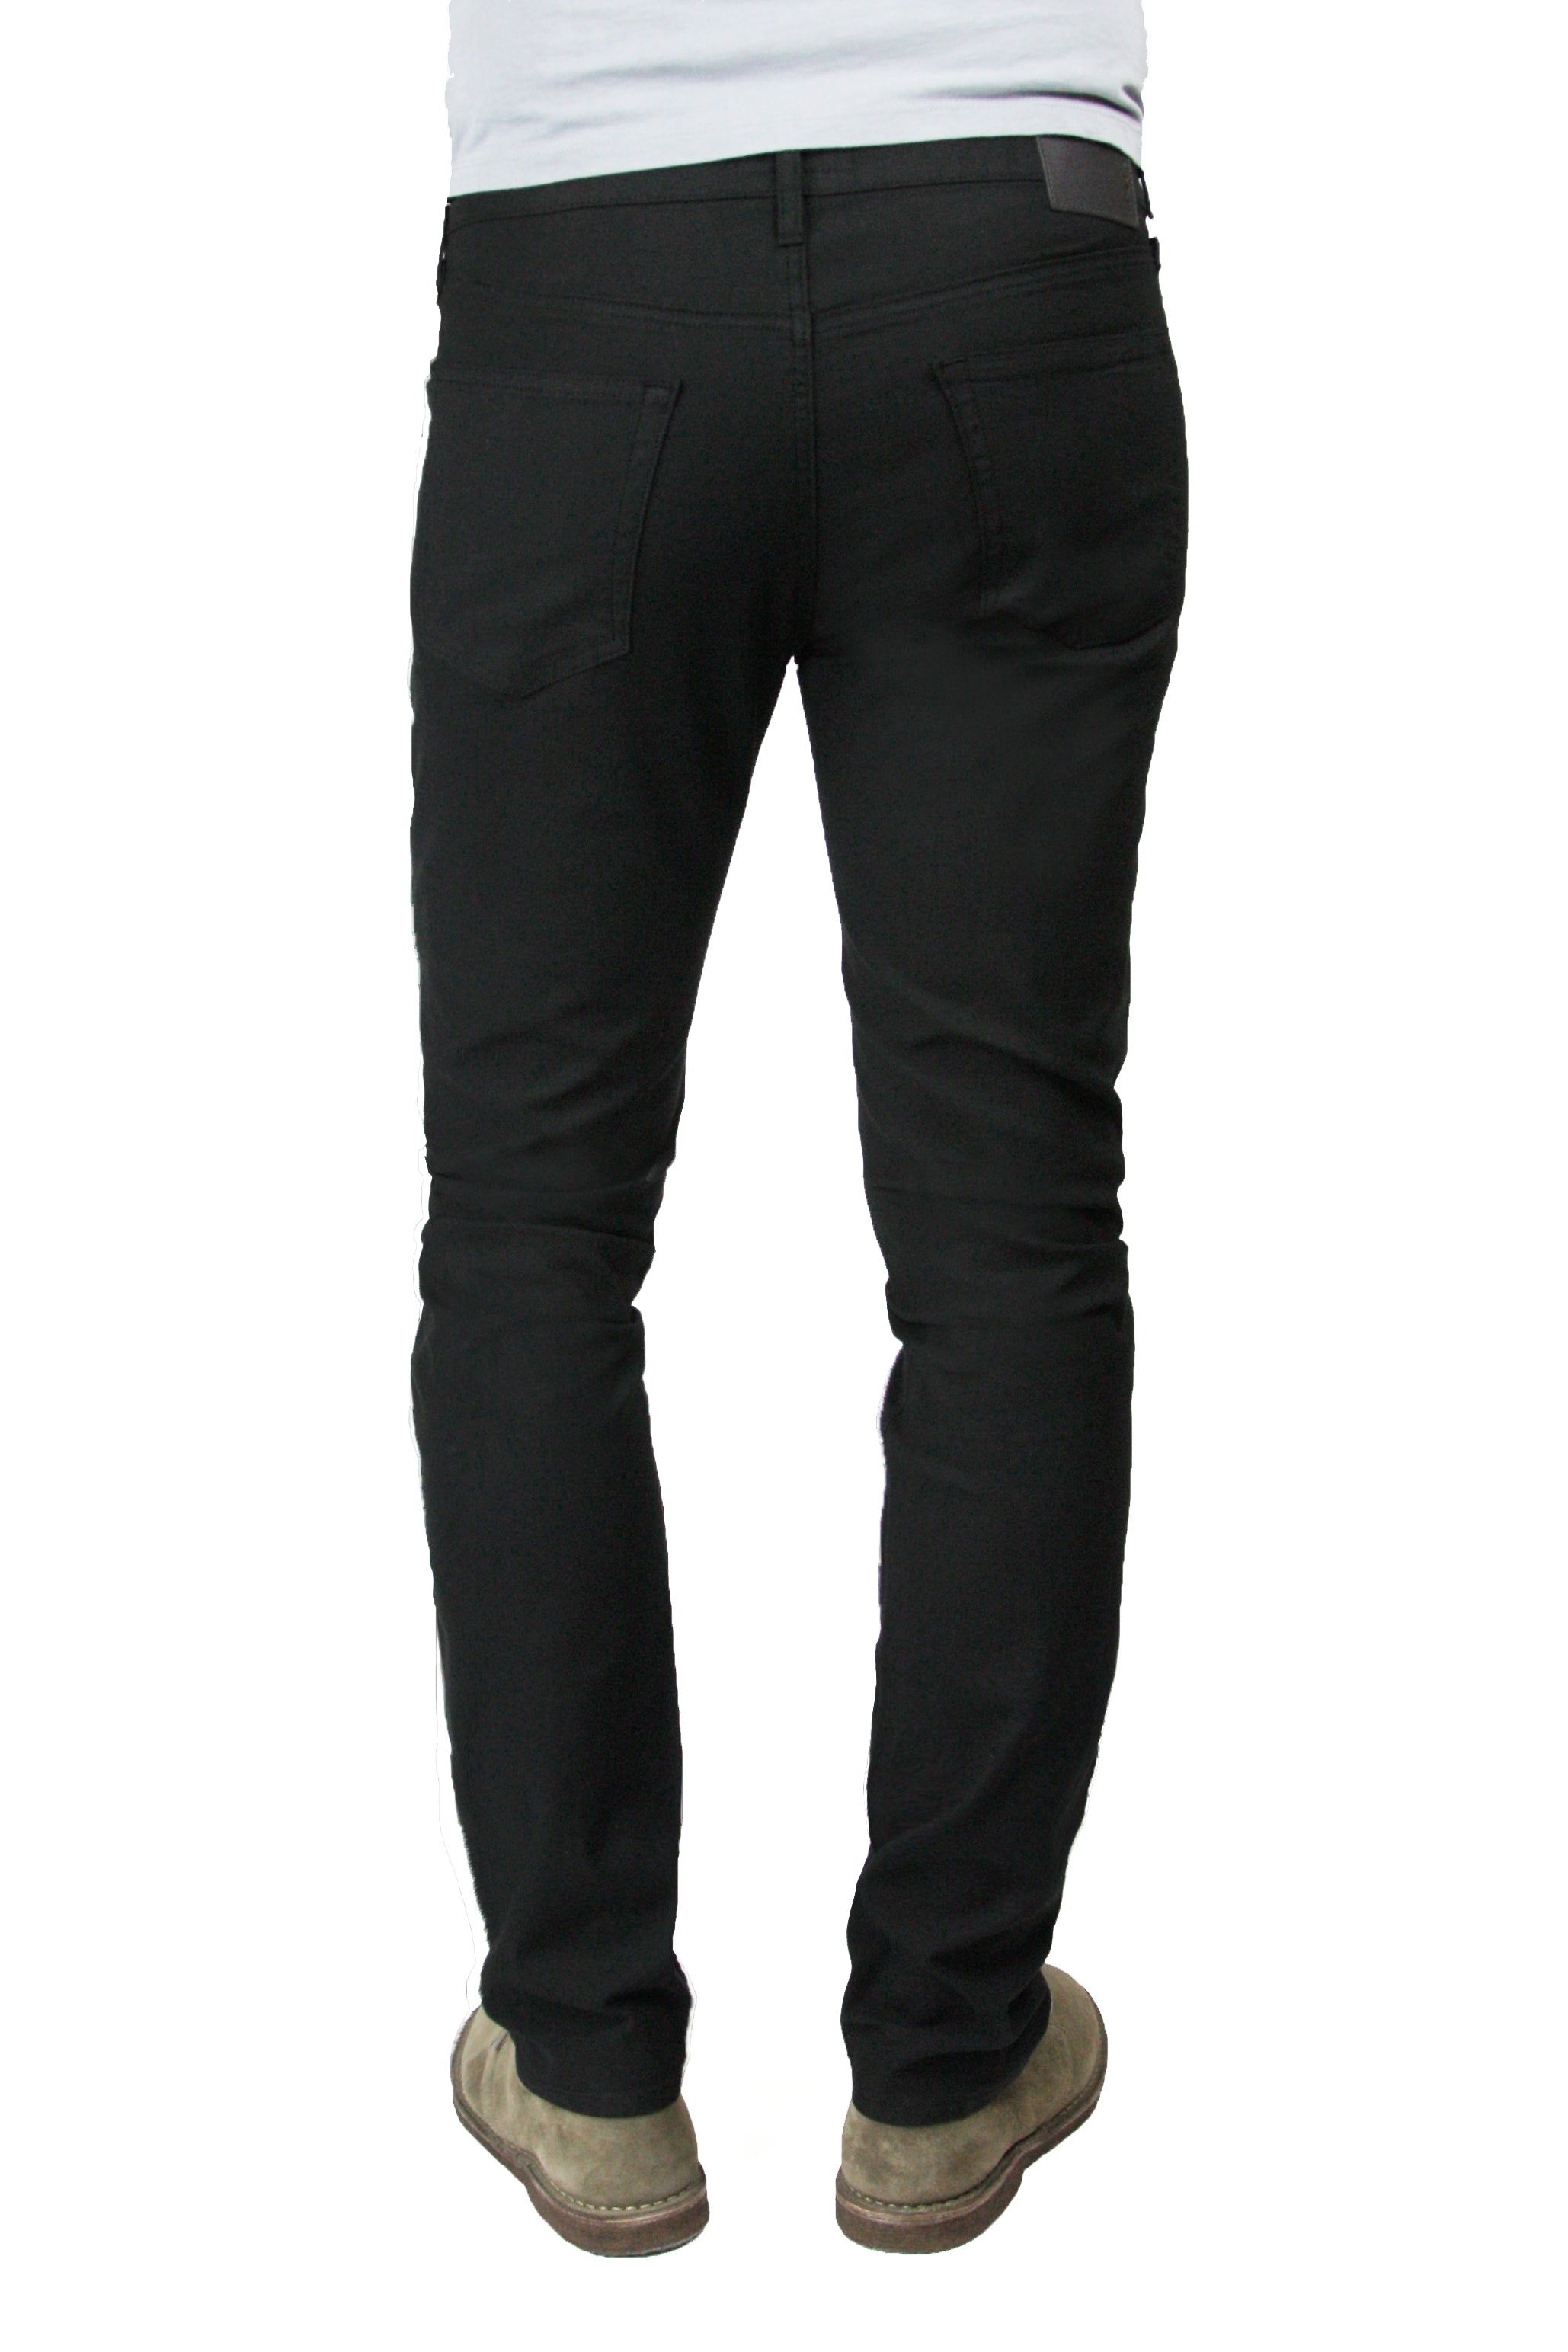 Back of S.M.N Studio's Hunter in Black Men's Twill Pants - Slim comfort stretch twill pants dyed in black